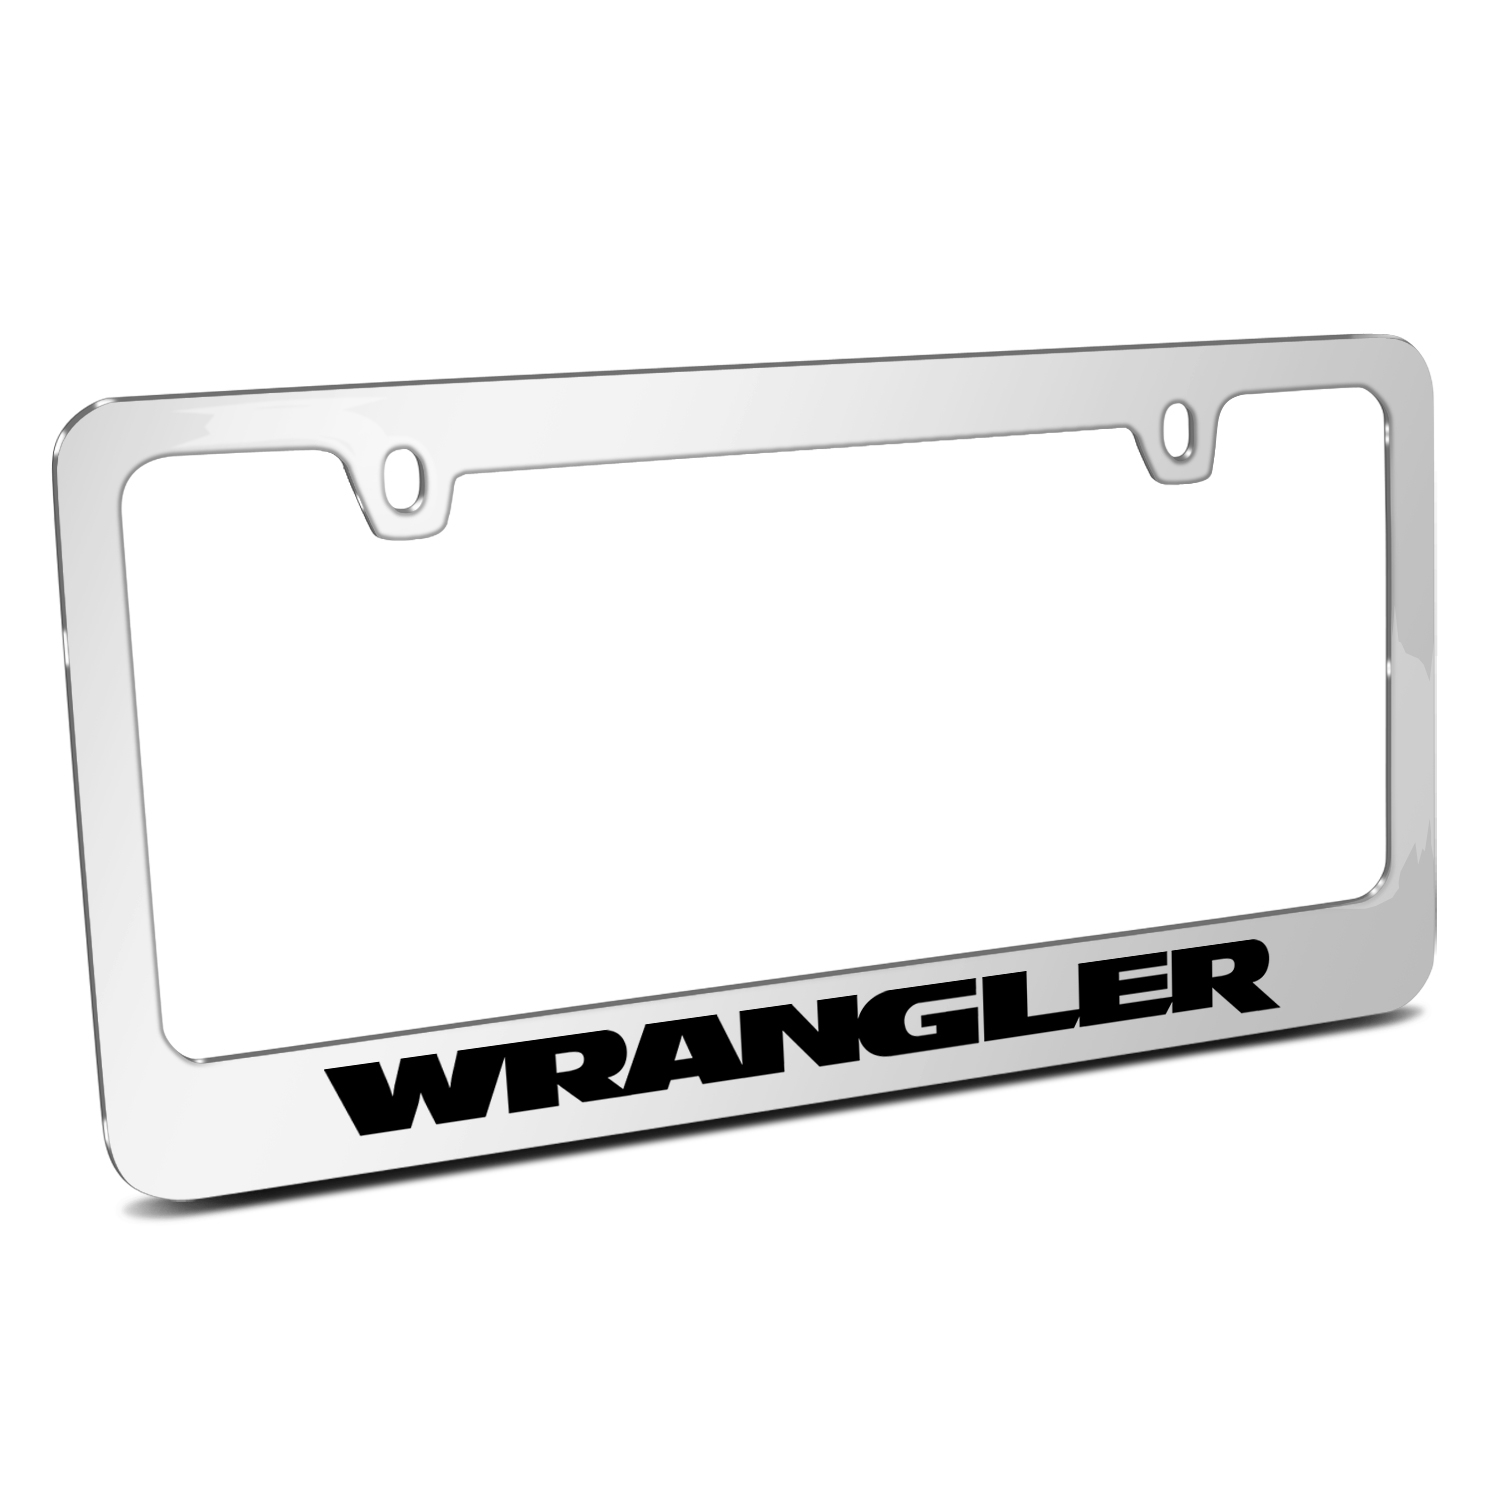 Jeep Wrangler Mirror Chrome Metal License Plate Frame